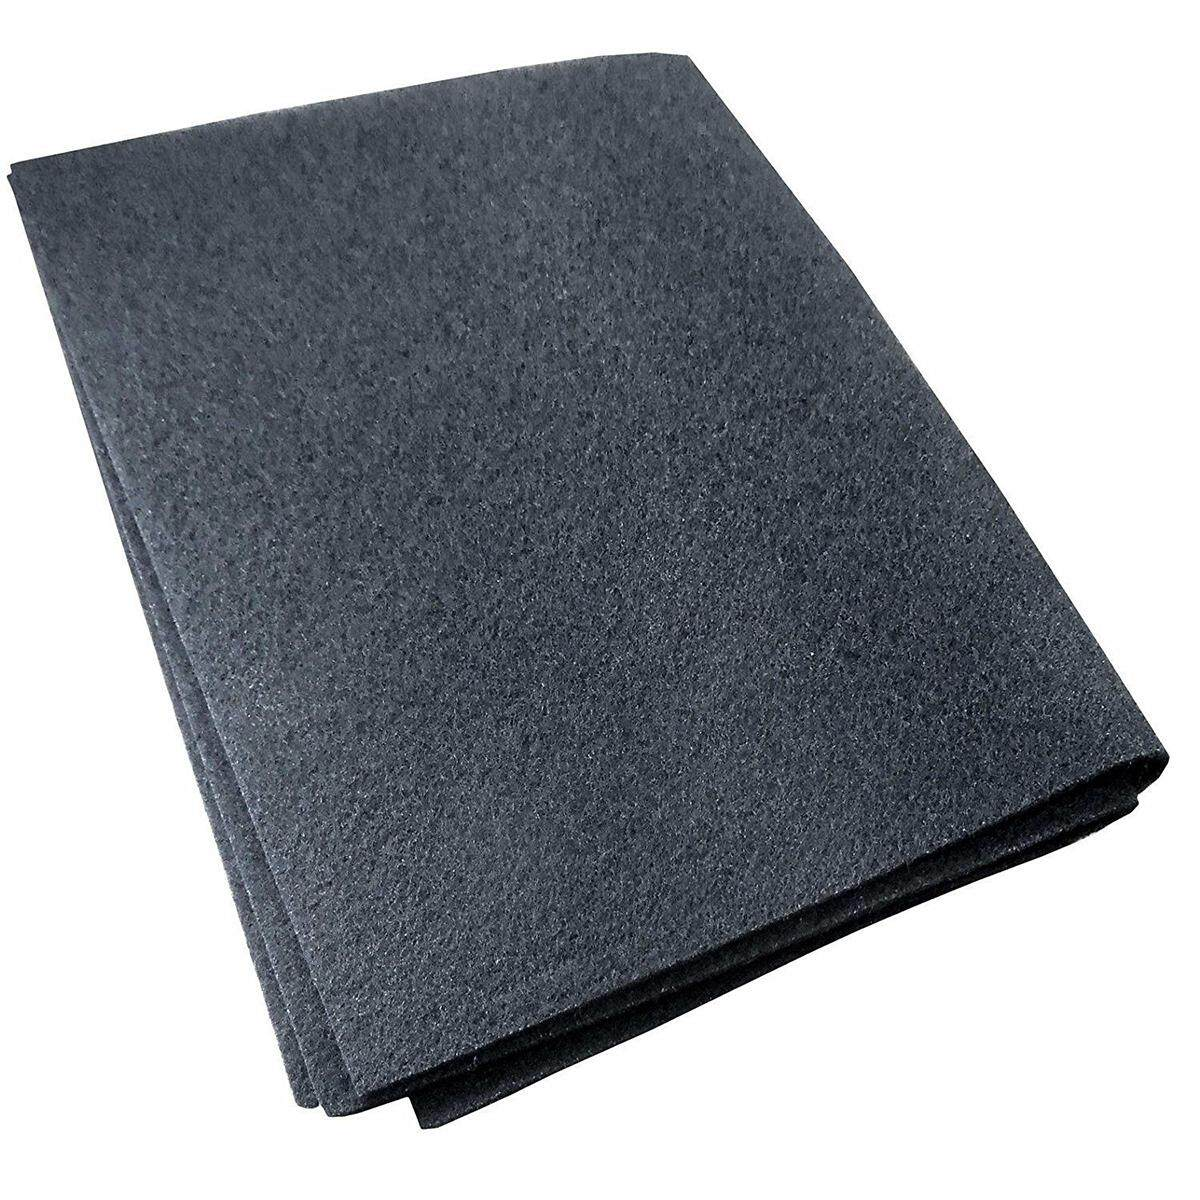 Carbon Cooker Hood Filter, Cut To Size, Charcoal Vent Filters For All Hoods By Moonbeam.